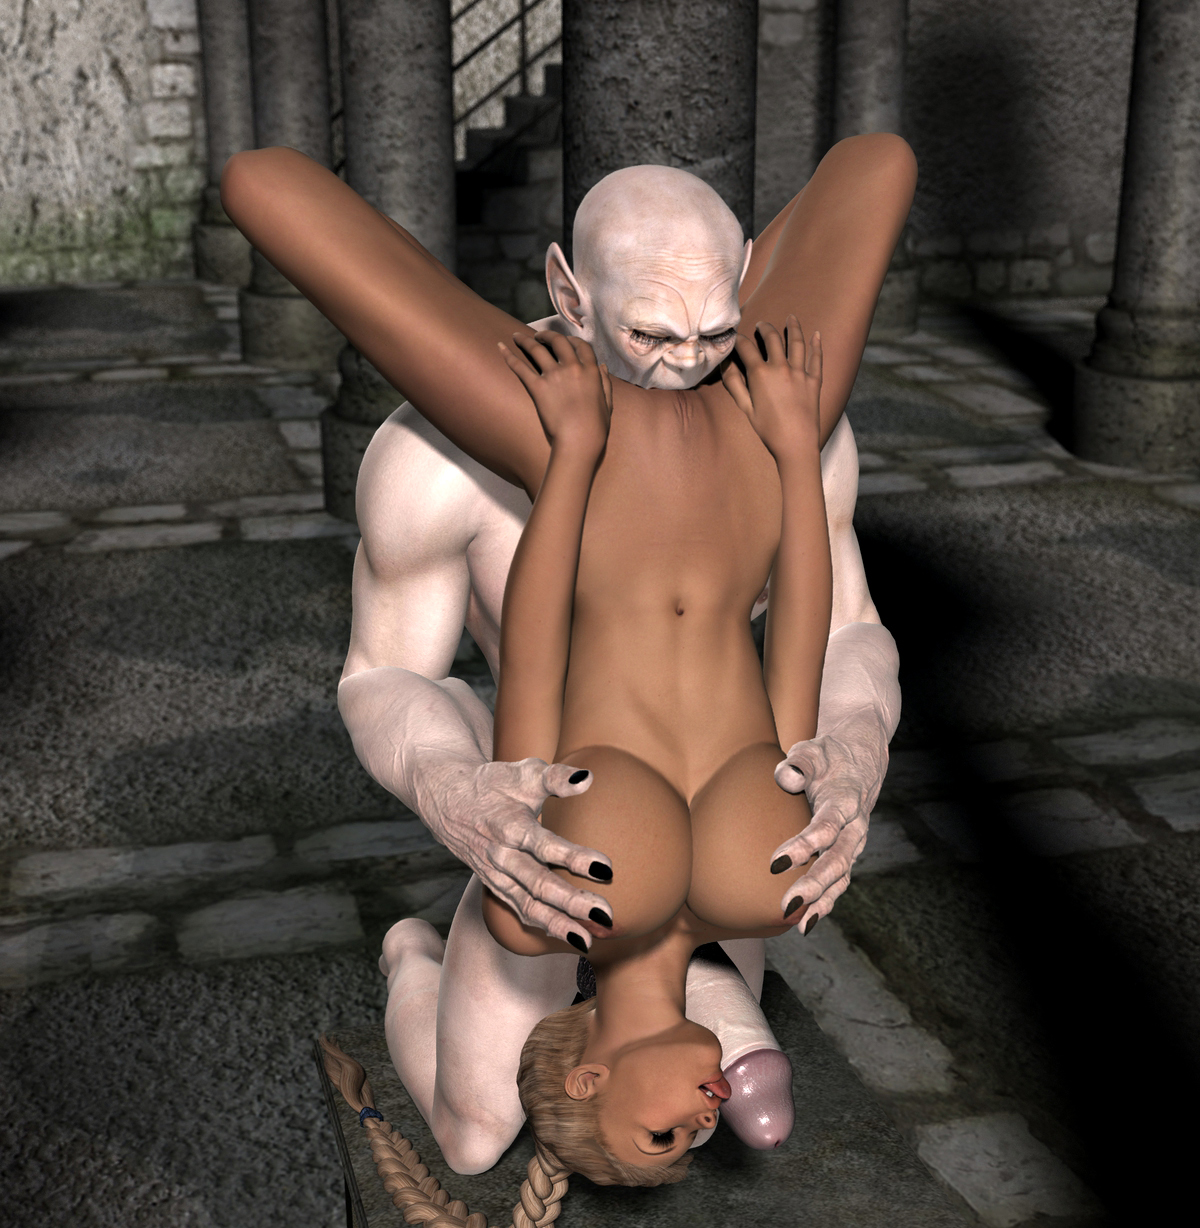 Show porn 3d picture of vamp erotica toons